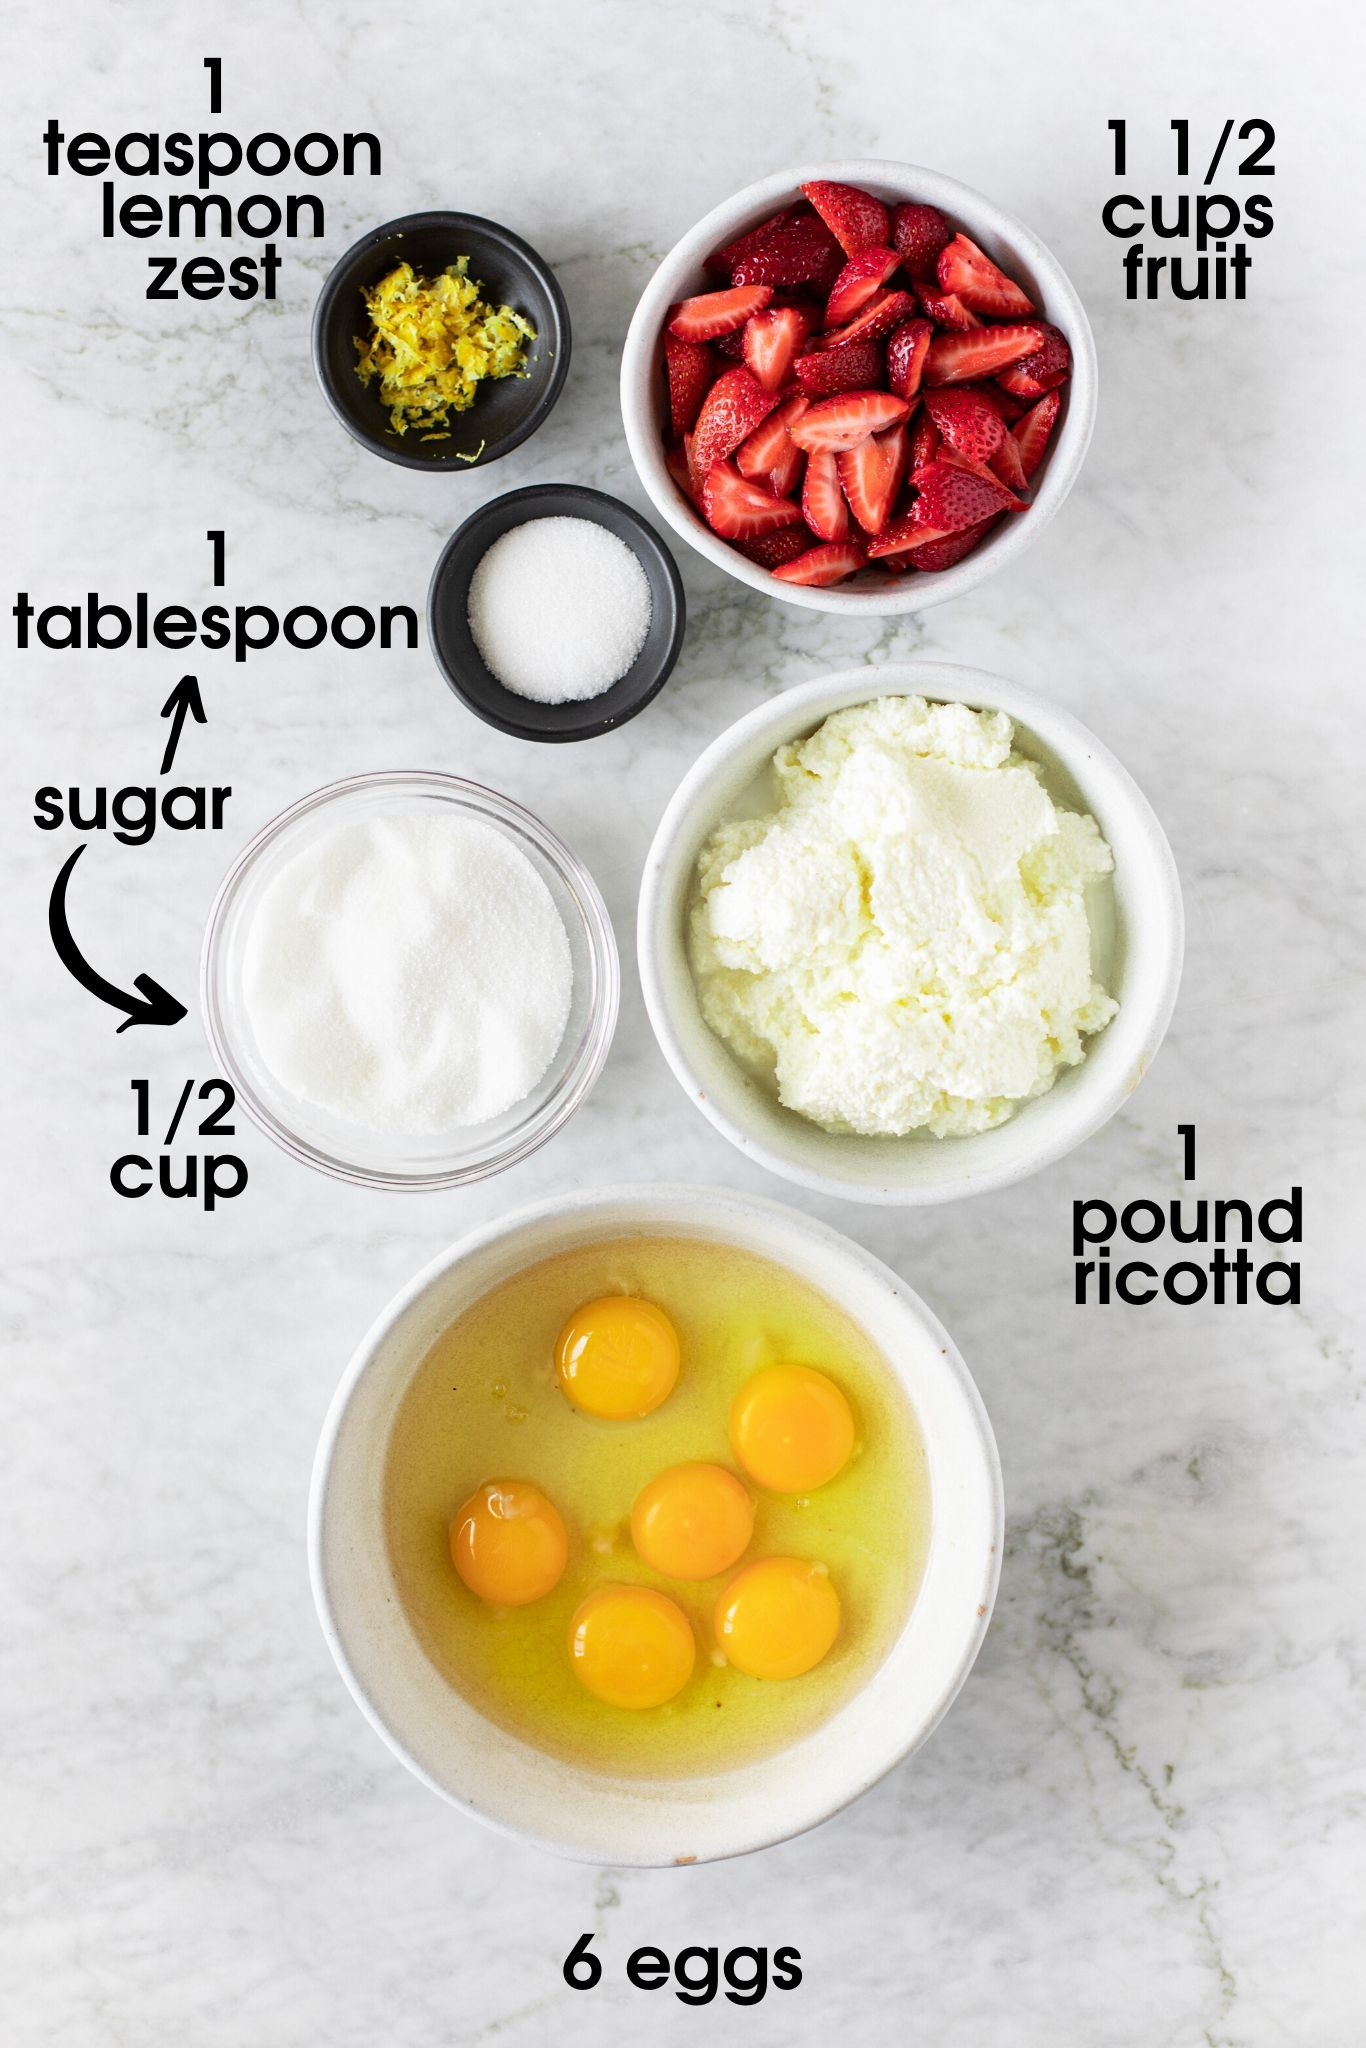 Raspberry Ricotta Soufflé ingredients: lemon zest, sugar, berries, ricotta and eggs | verygoodcook.com